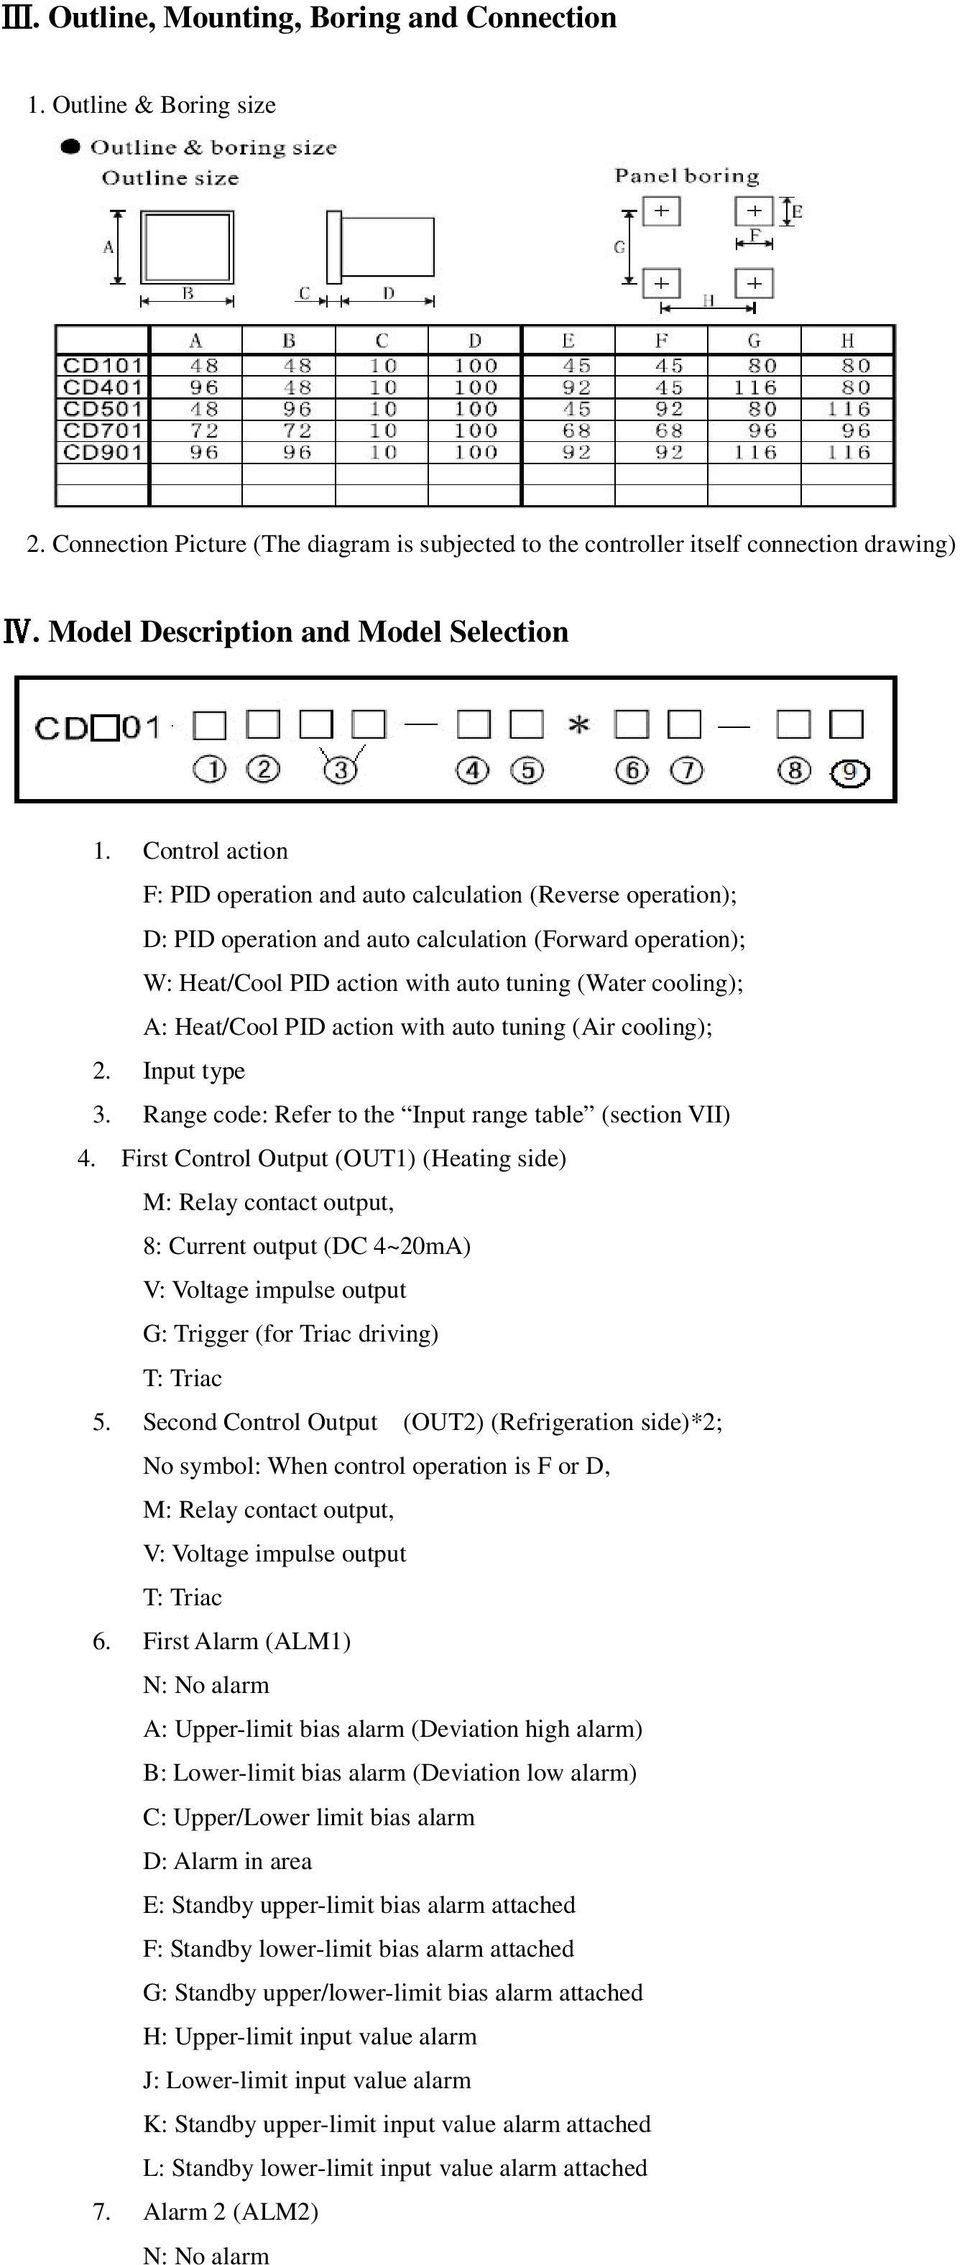 Temperature Controller Cd401 Cd901 Cd701 Cd501 Cd100 Cd101 Pid Wiring Diagram Heat Control Action F Operation And Auto Calculation Reverse D